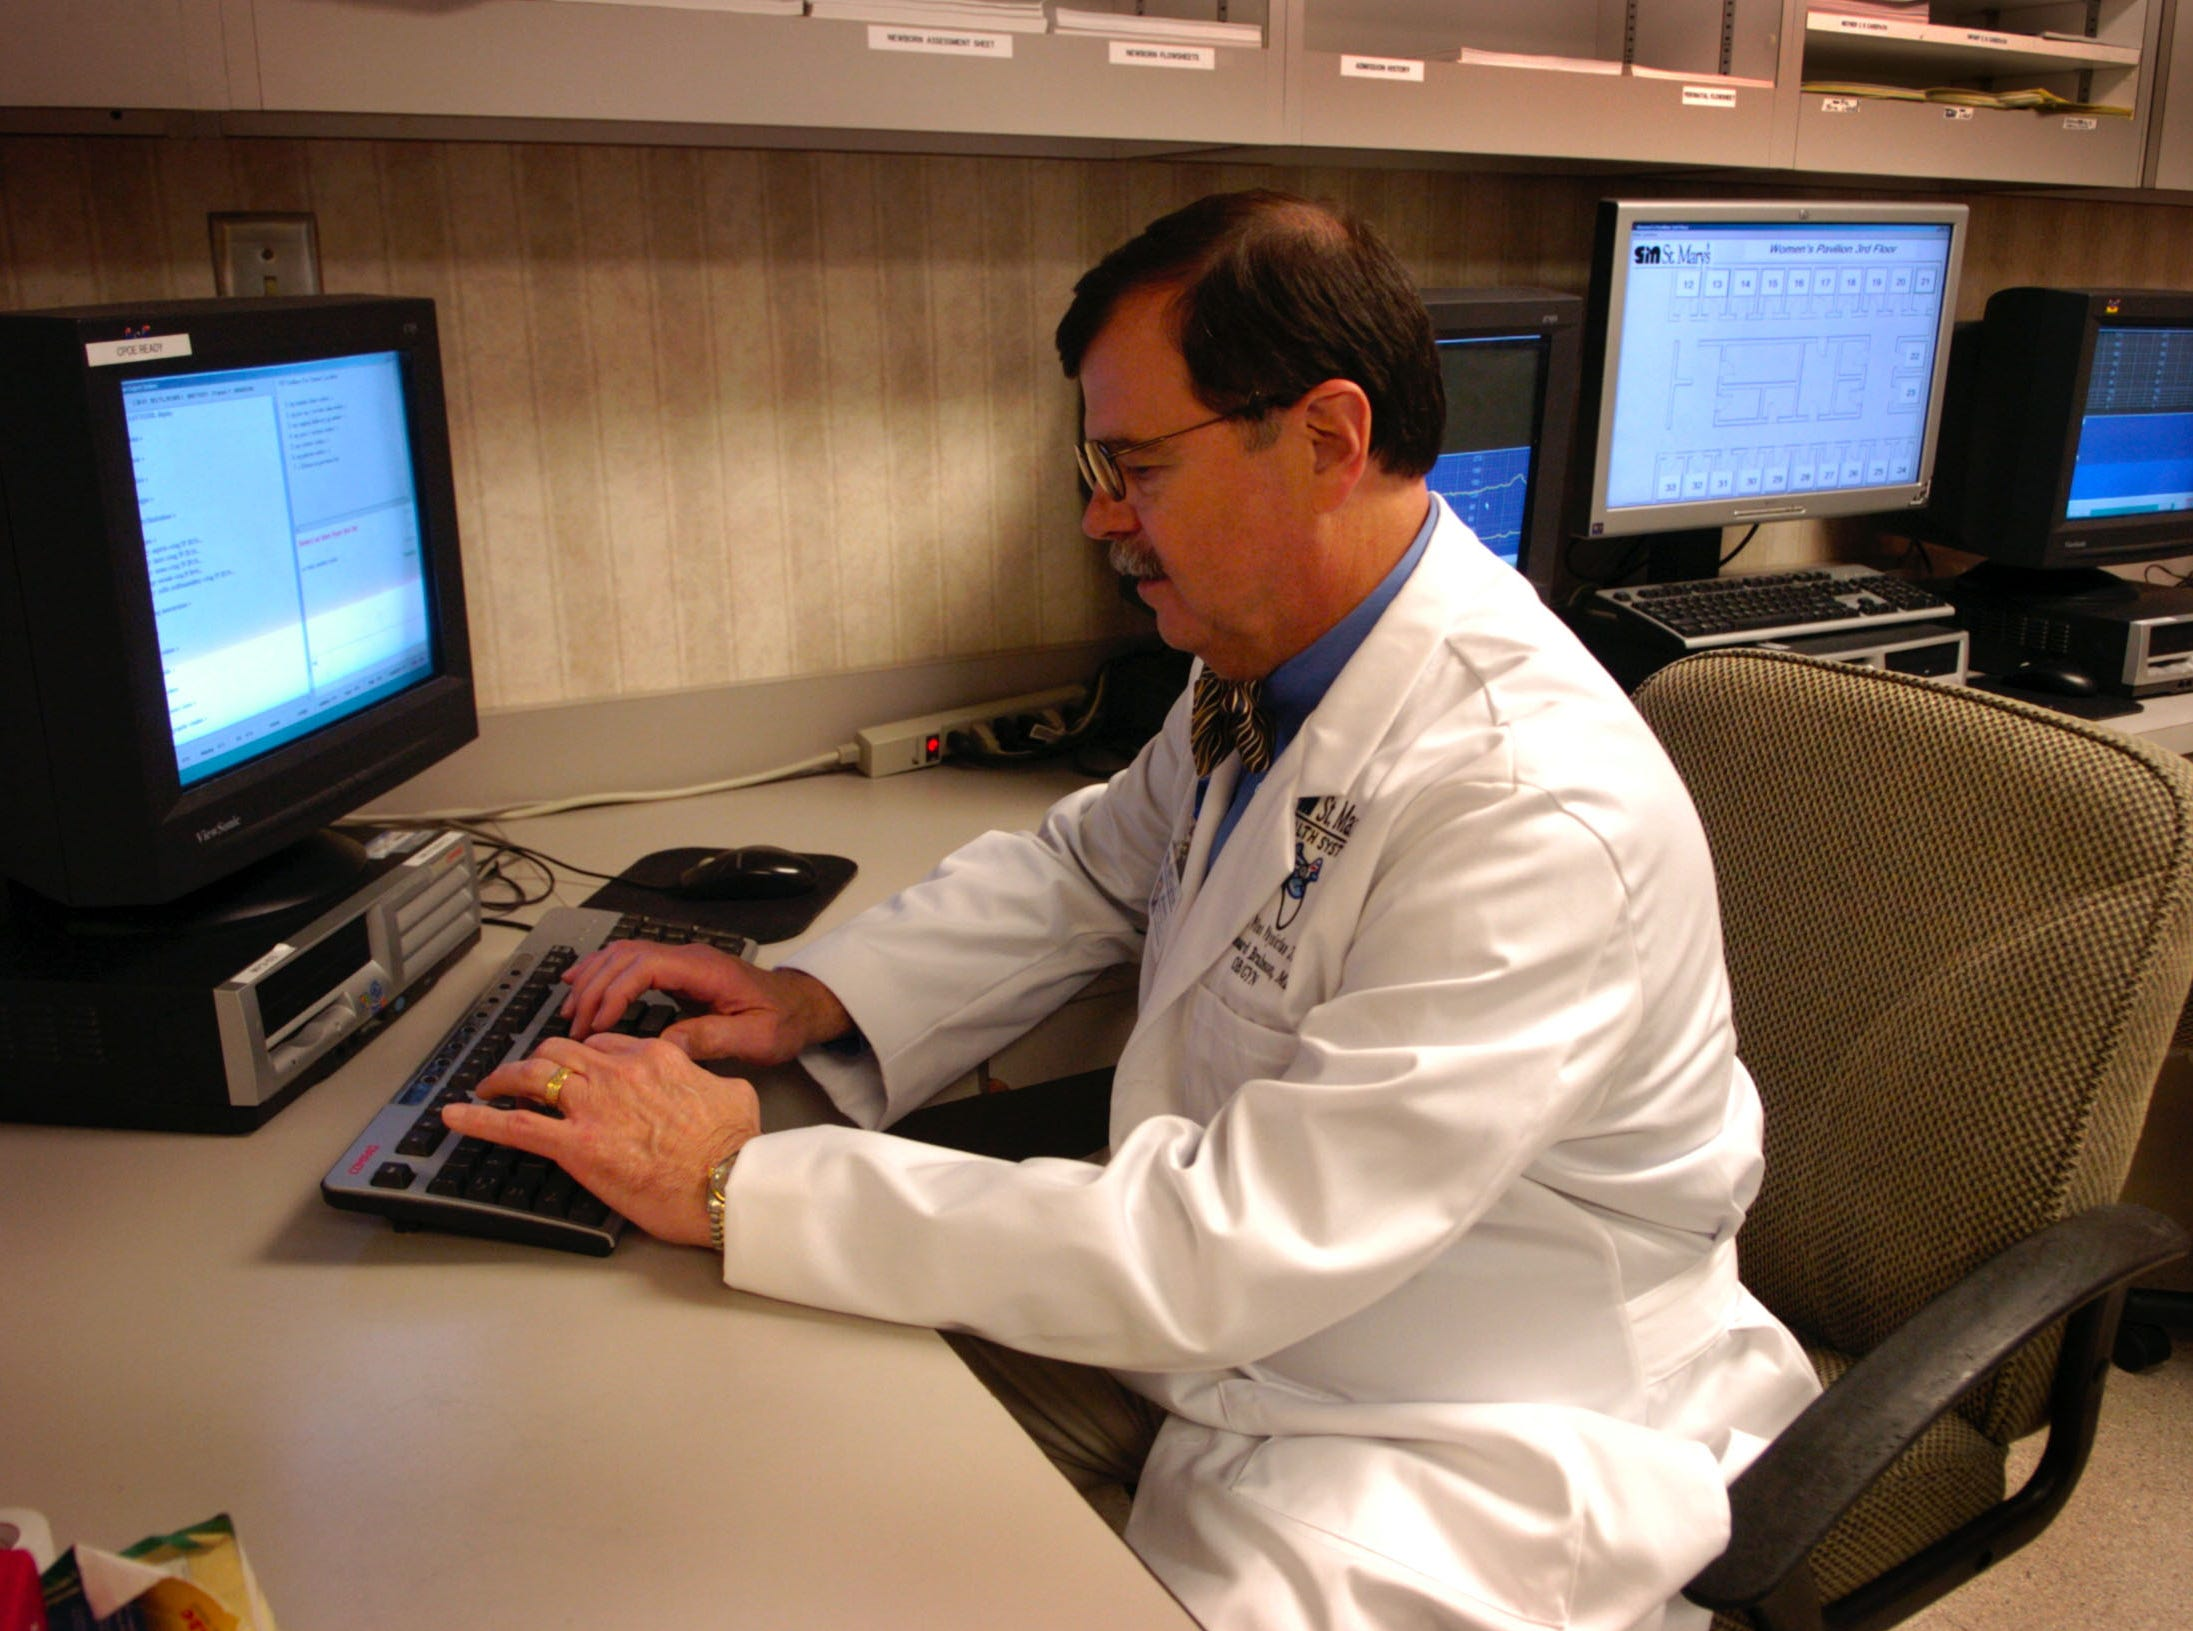 Leonard Brabson M.D.,  shows the computerized patient order entry system that has been implemented at St. Mary's Health System.  The system allows doctors to put medication orders directly into a computer instead of hand written noters.